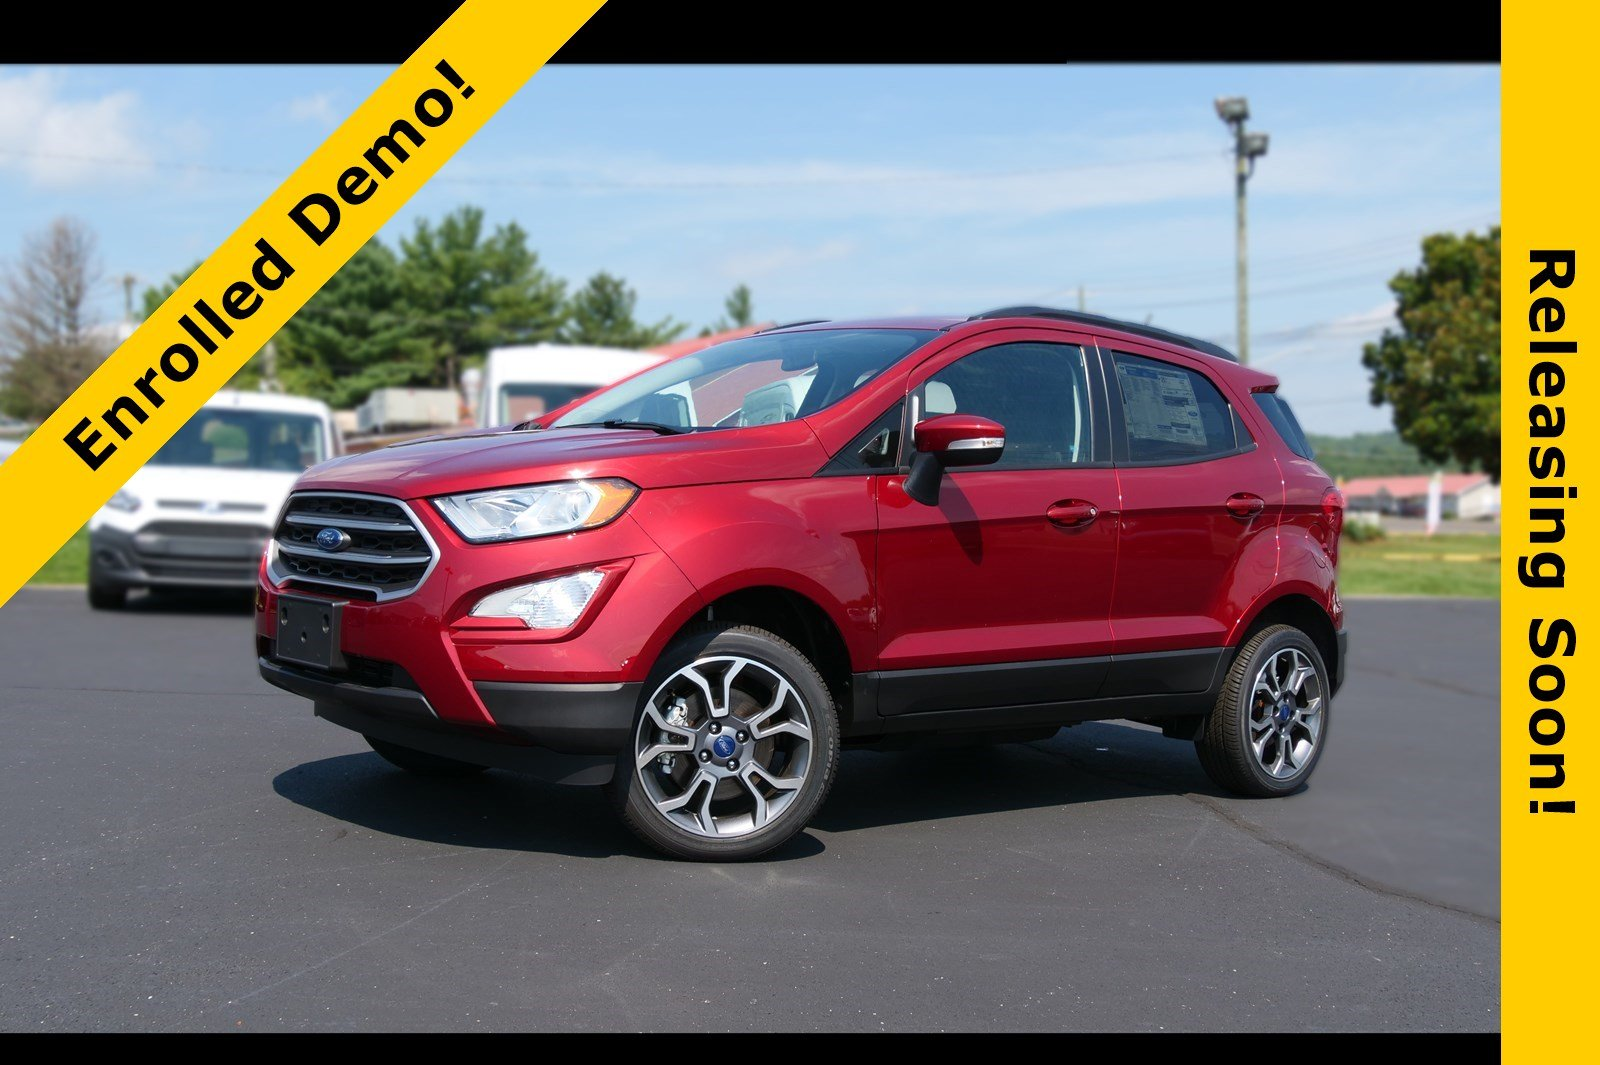 2018 Ford EcoSport SE - ACTIVE DEMO SE 4WD